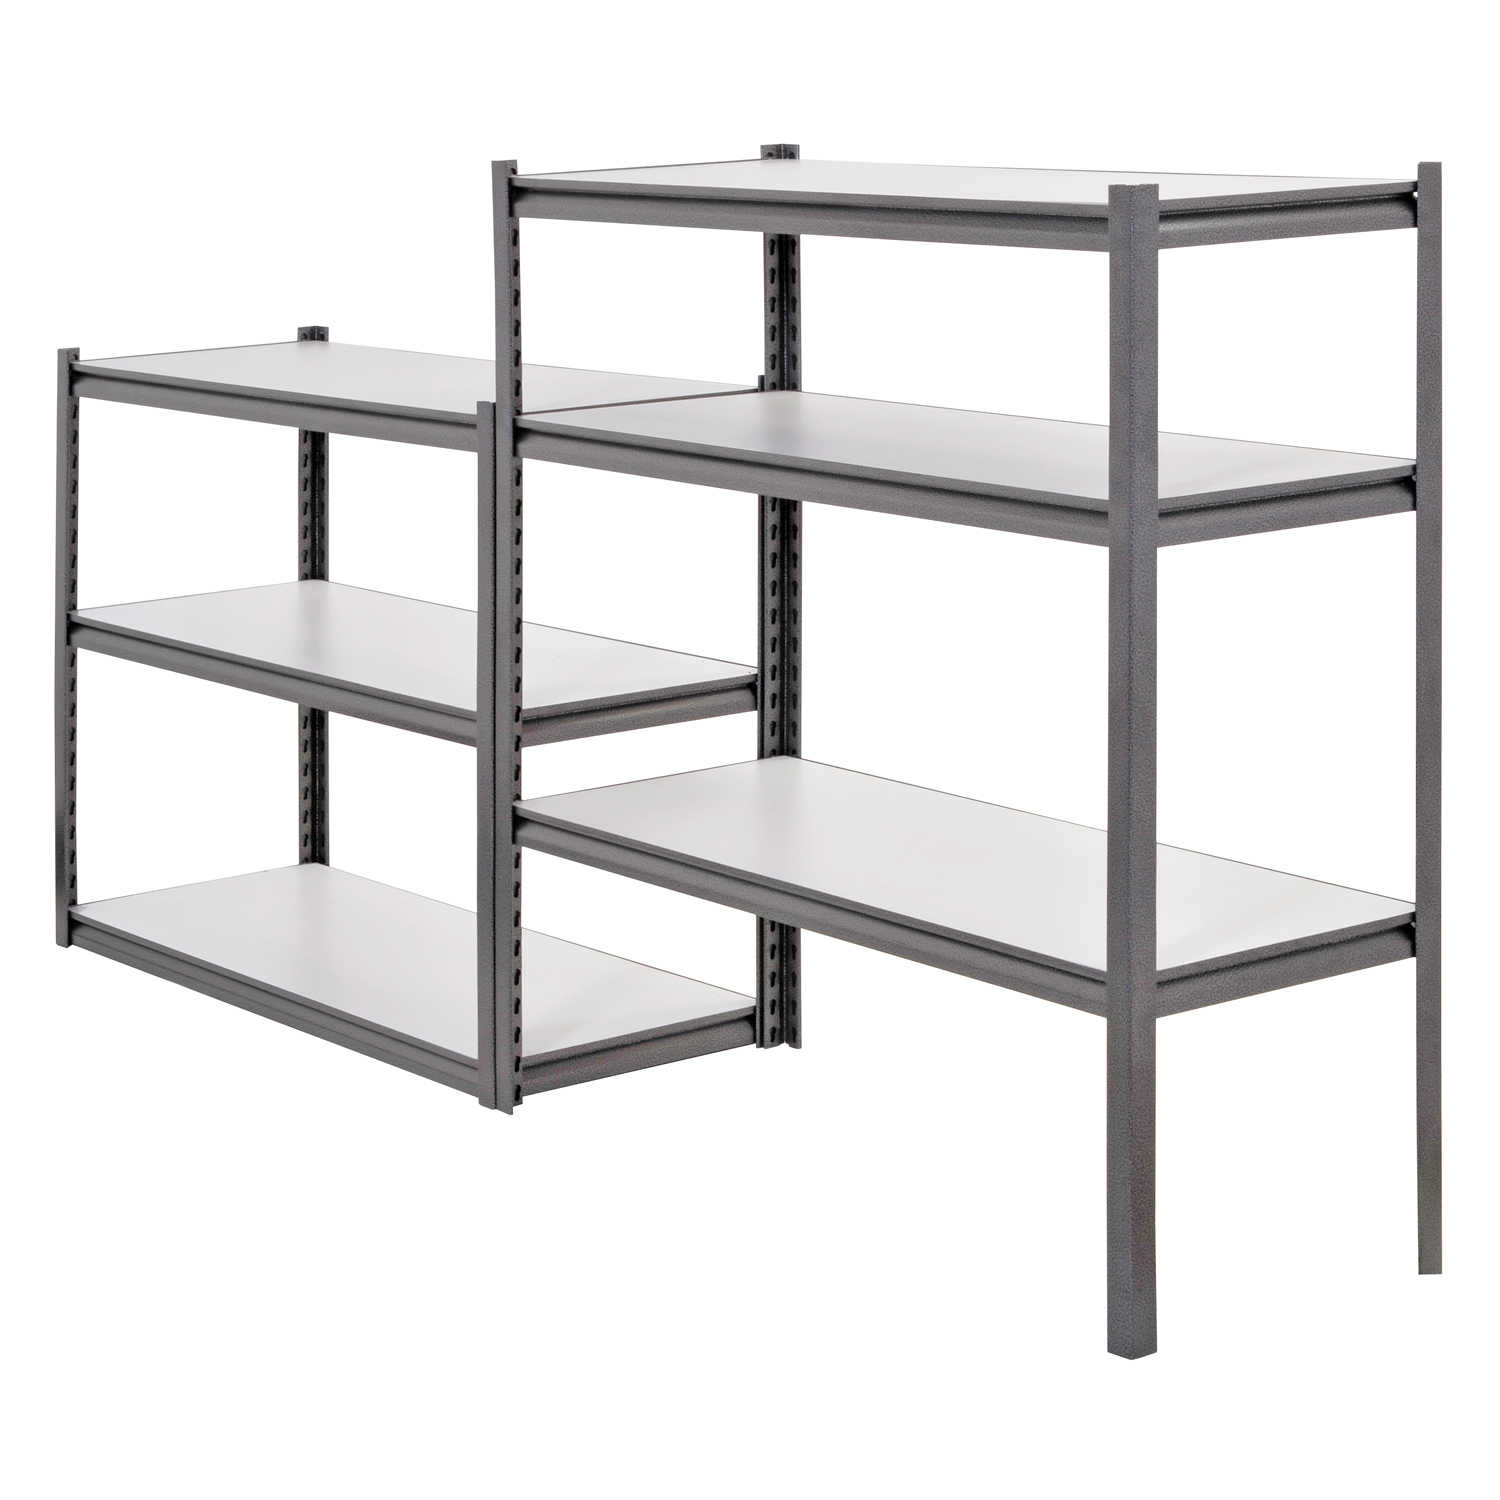 6-Shelf 48'W x 84'H x 18'D Steel Storage Shelving Unit, Silver Vein